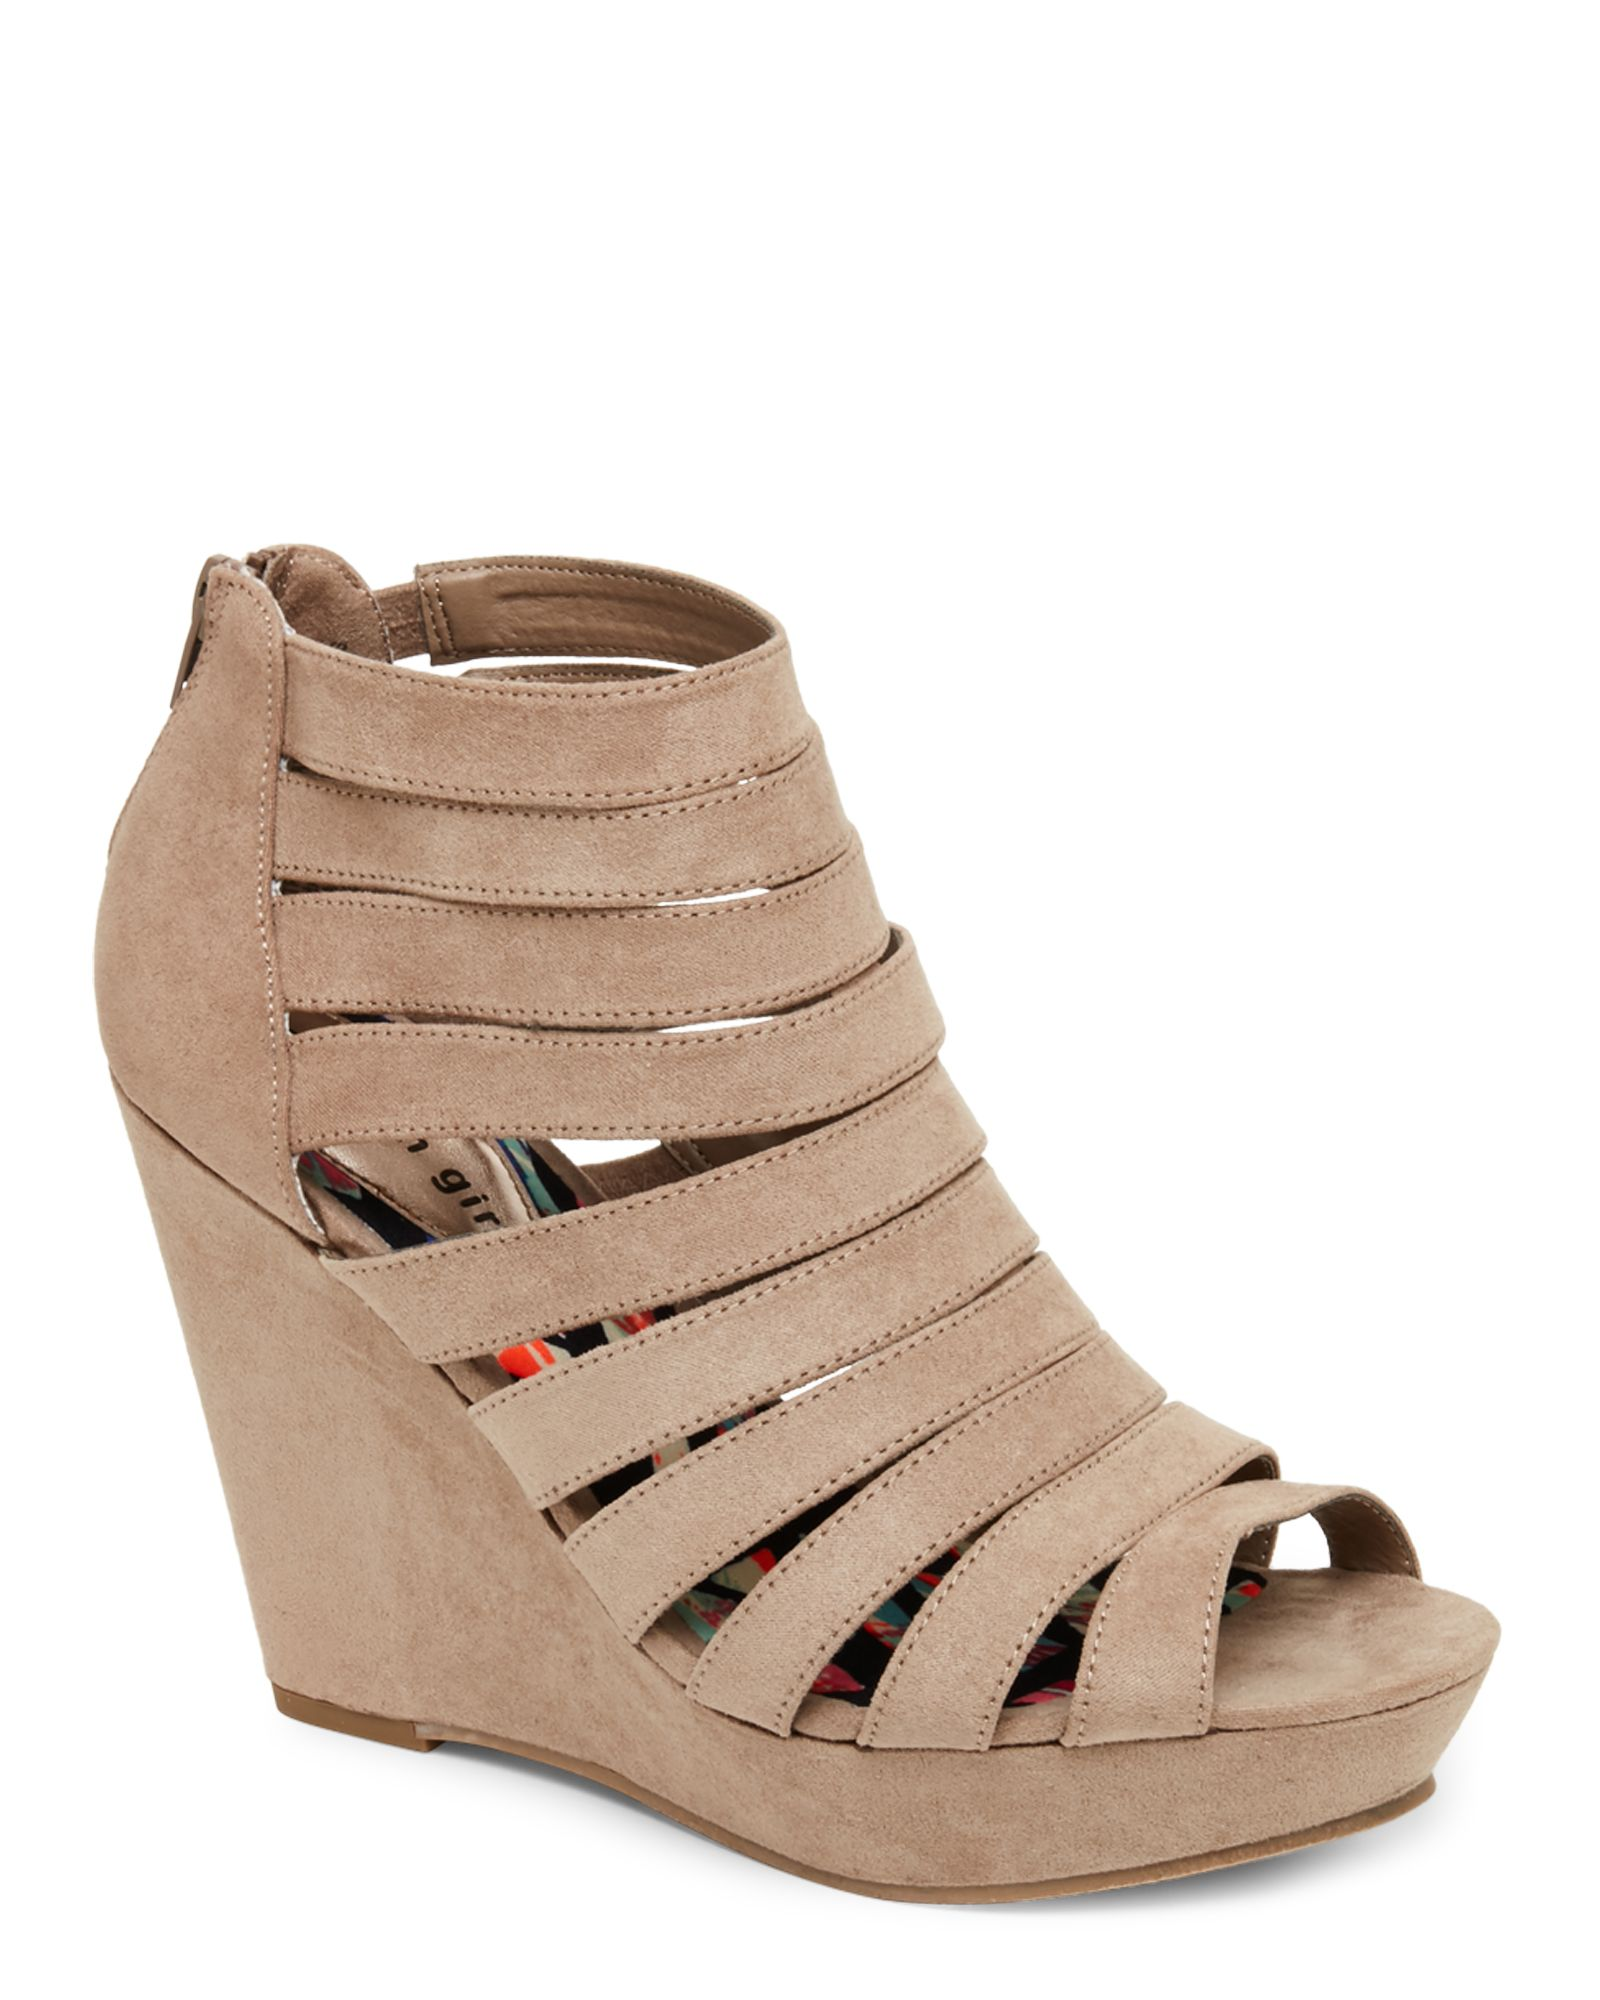 812920fcada Madden Girl Taupe Kiickit Caged Open Toe Platform Wedge Sandals ...